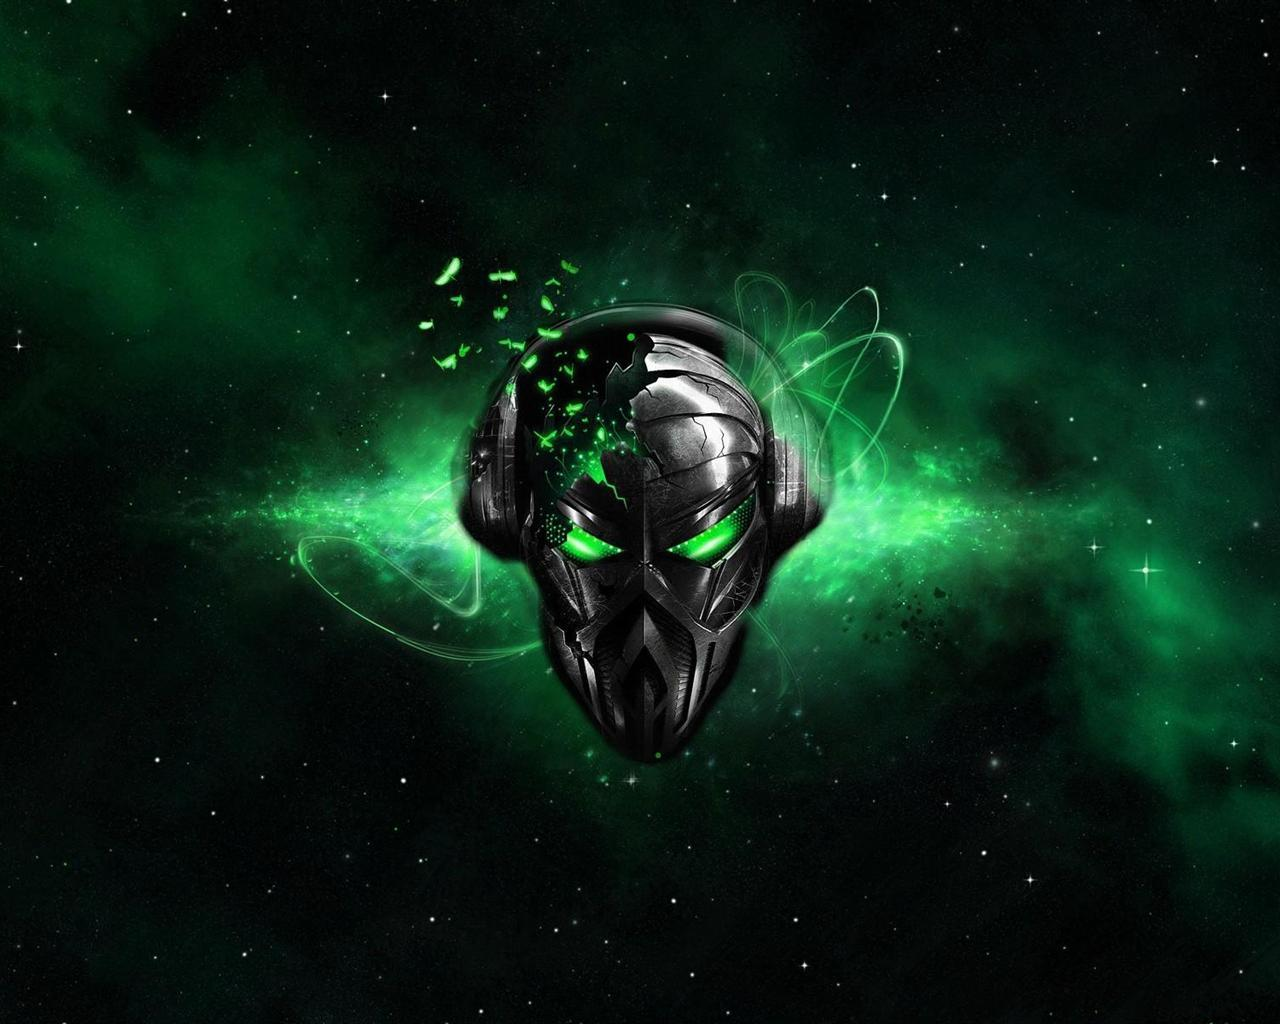 alienware wallpaper green hd - photo #19